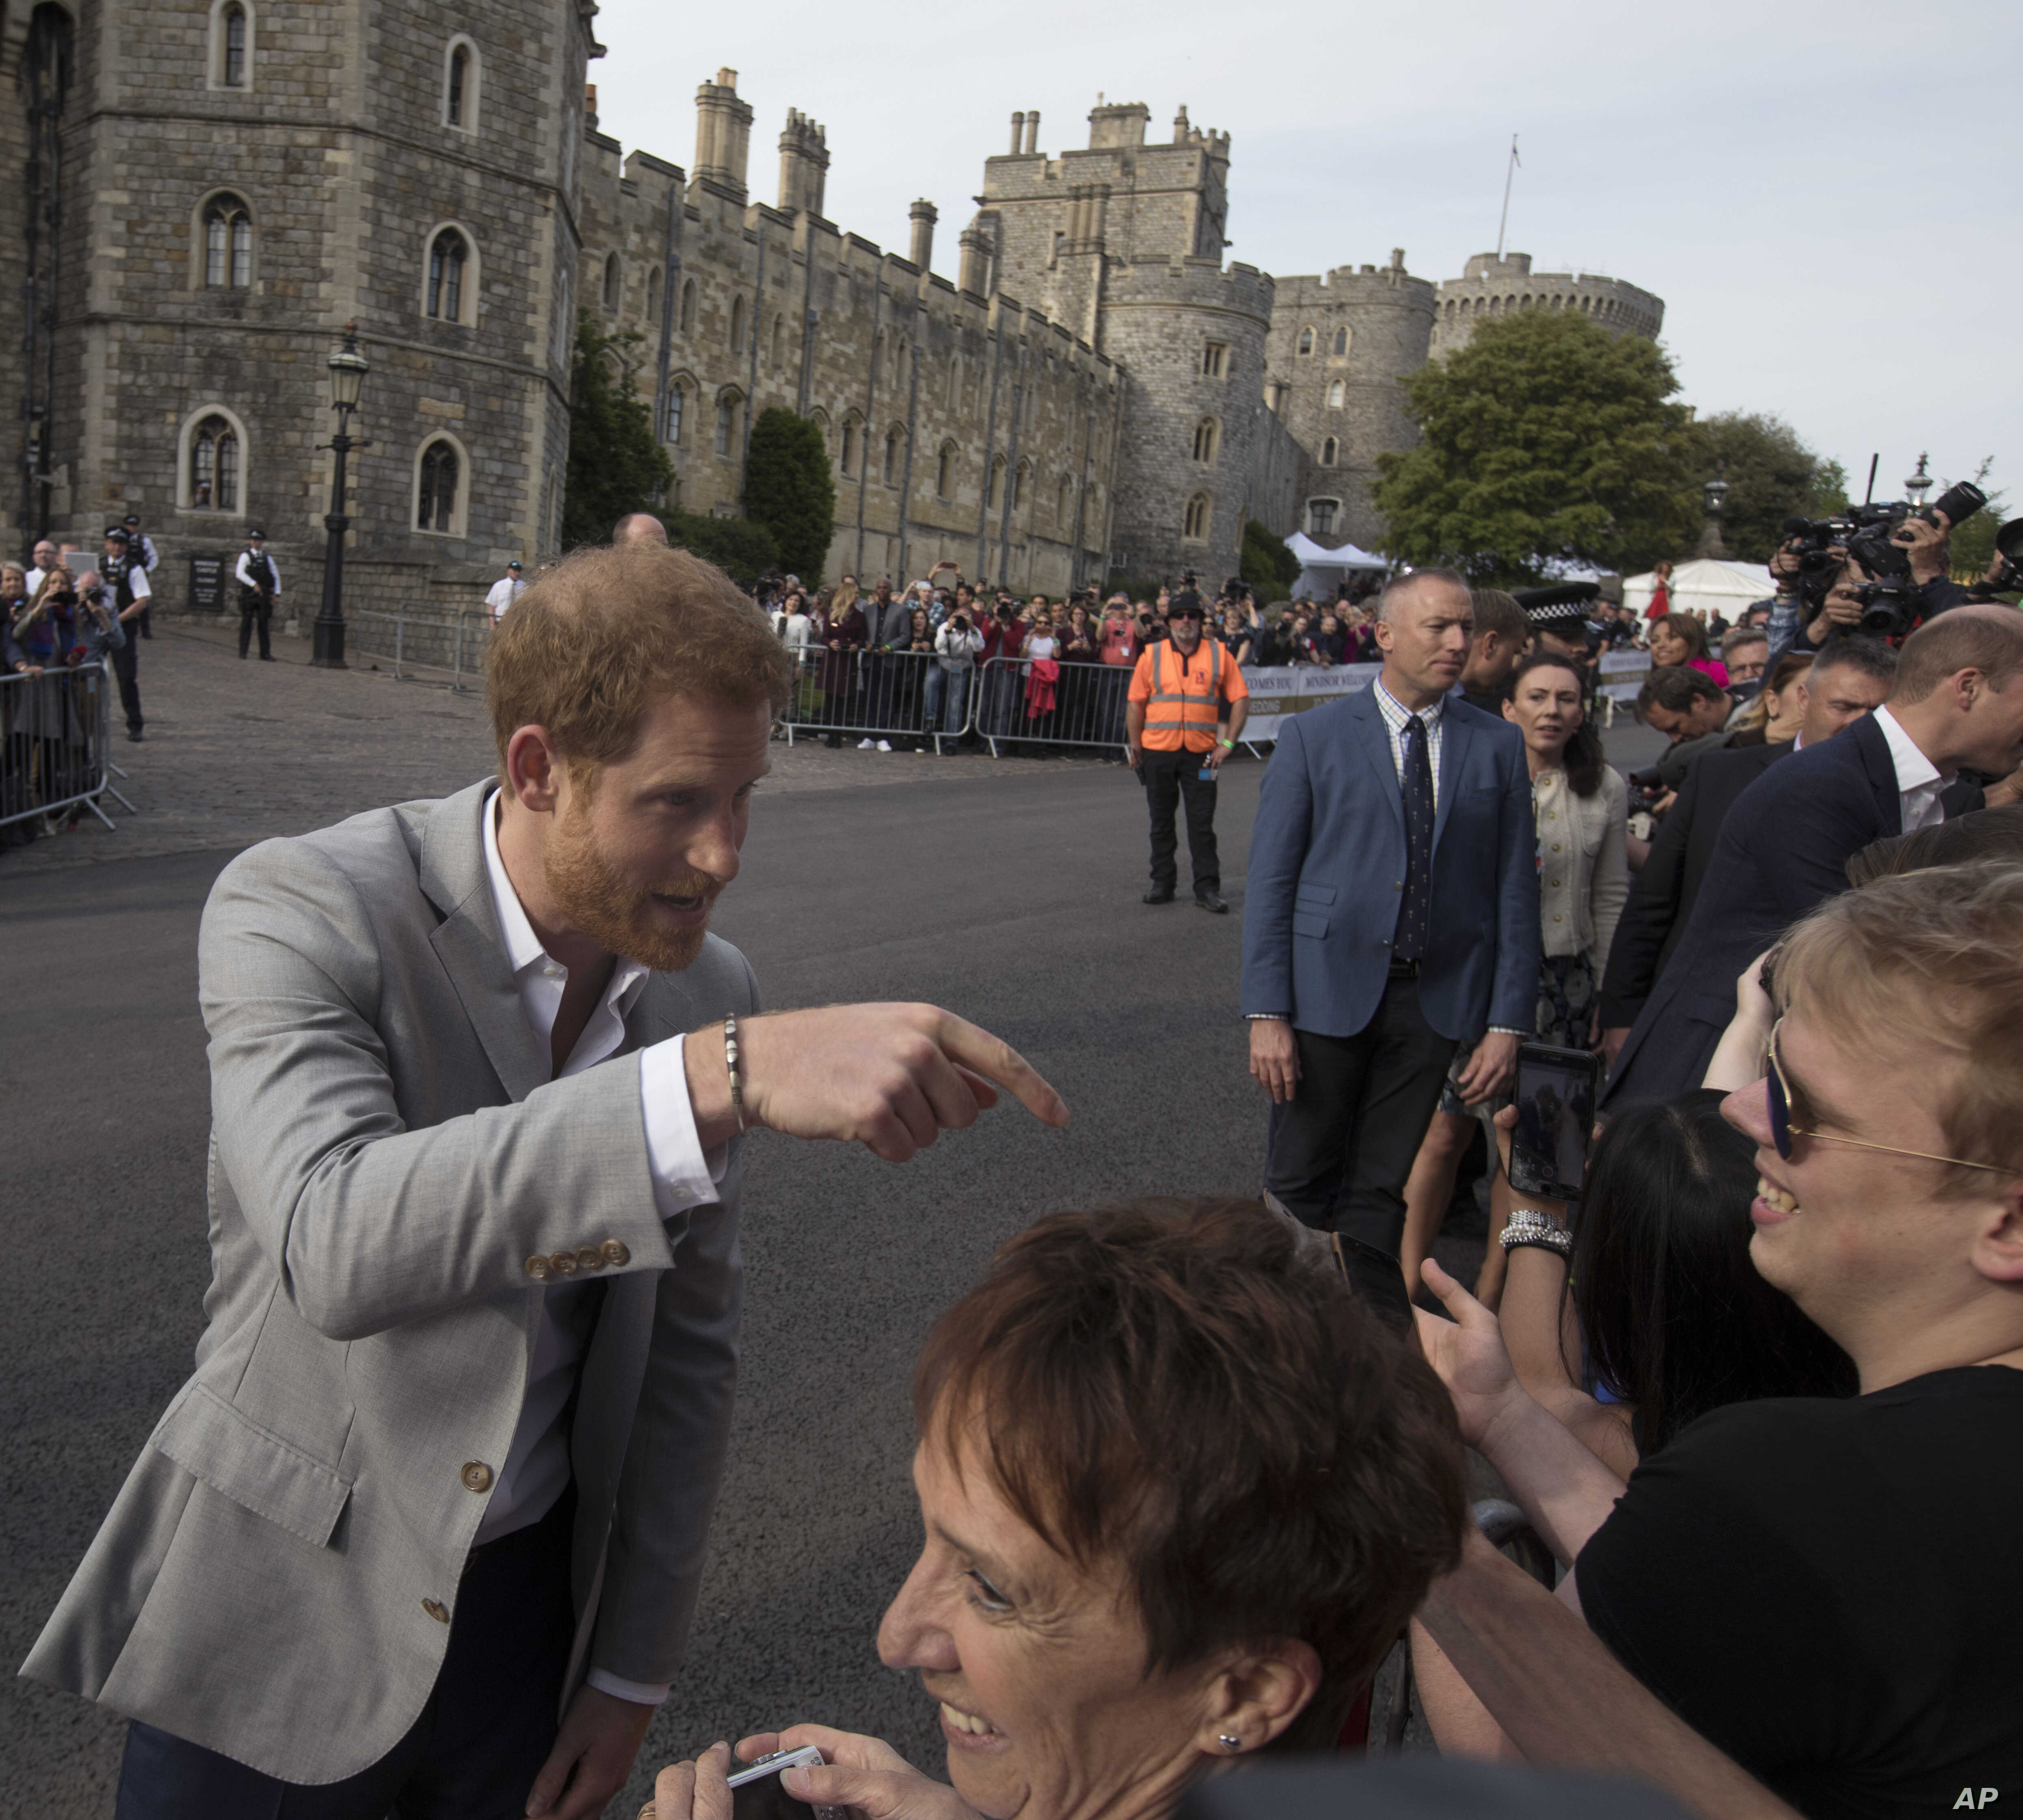 Britain's Prince Harry, left, and Prince William greet well-wishers outside Windsor castle, in Windsor, England, May 18, 2018, ahead of Prince Harry's wedding to Meghan Markle on May 19.